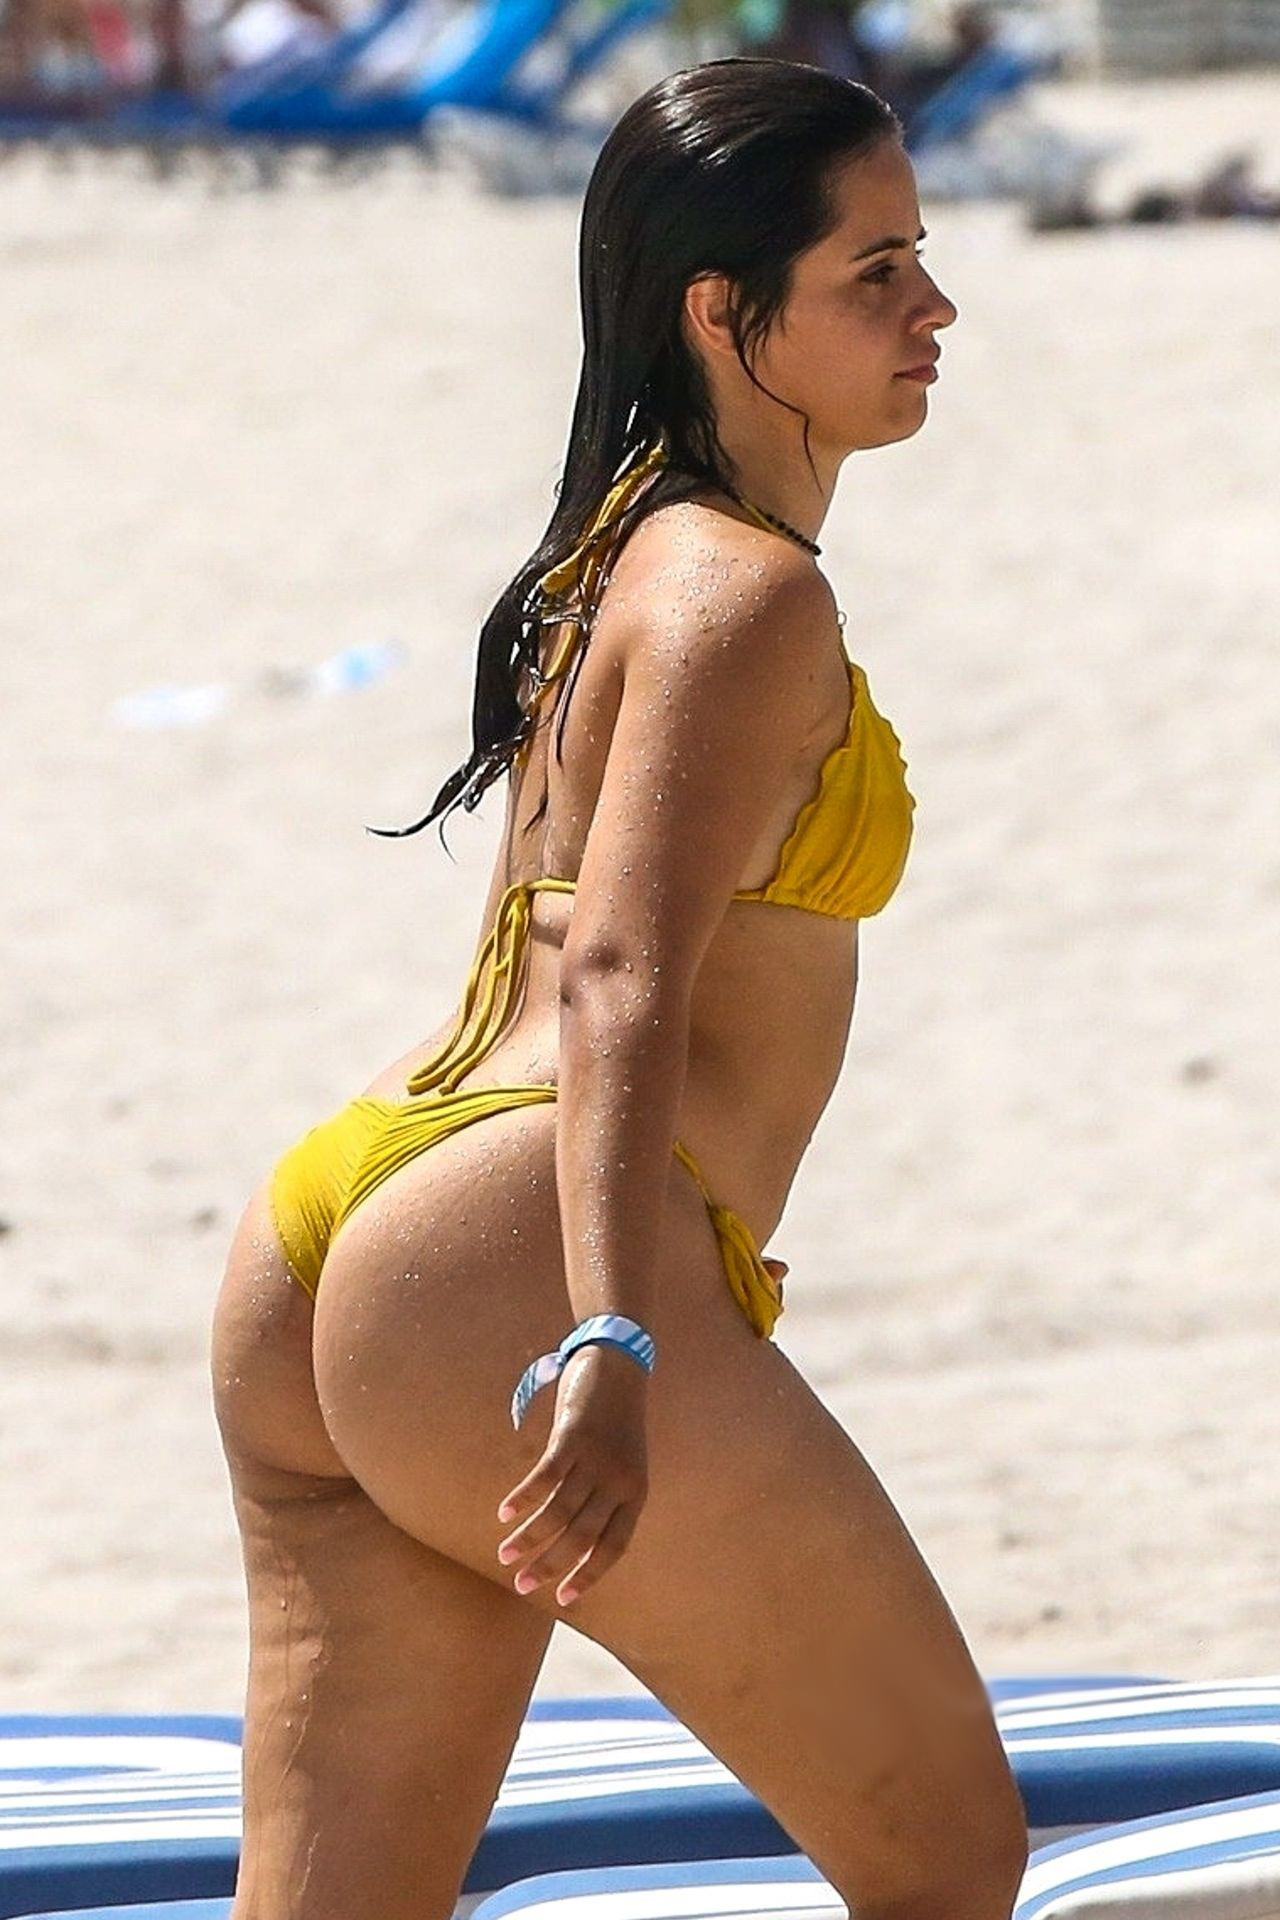 You are currently viewing Camila Cabello Exposing Big Butt In Wet Bikini On A Beach